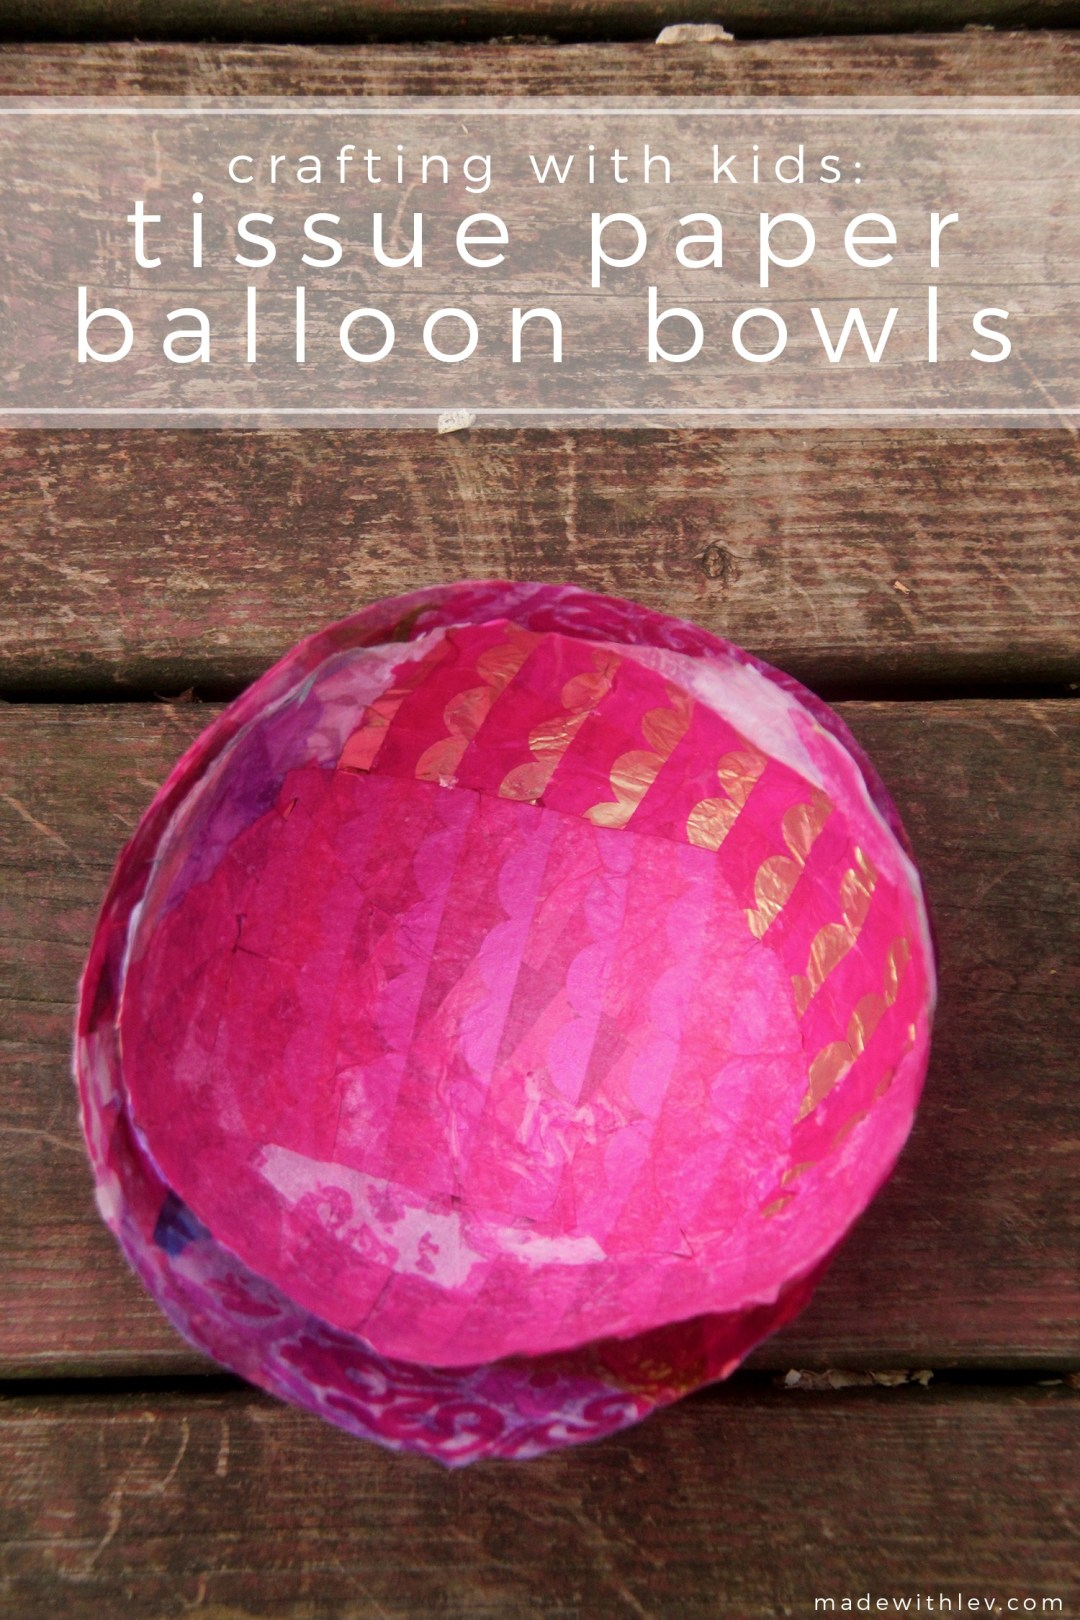 Crafting with Kids: Tissue Paper Balloon Bowls | #craftingwithkids #kidscrafts #balloonbowls #tissuepapercraft #tissuepaper #gluecrafts #familycraft #craftideas #craftproject